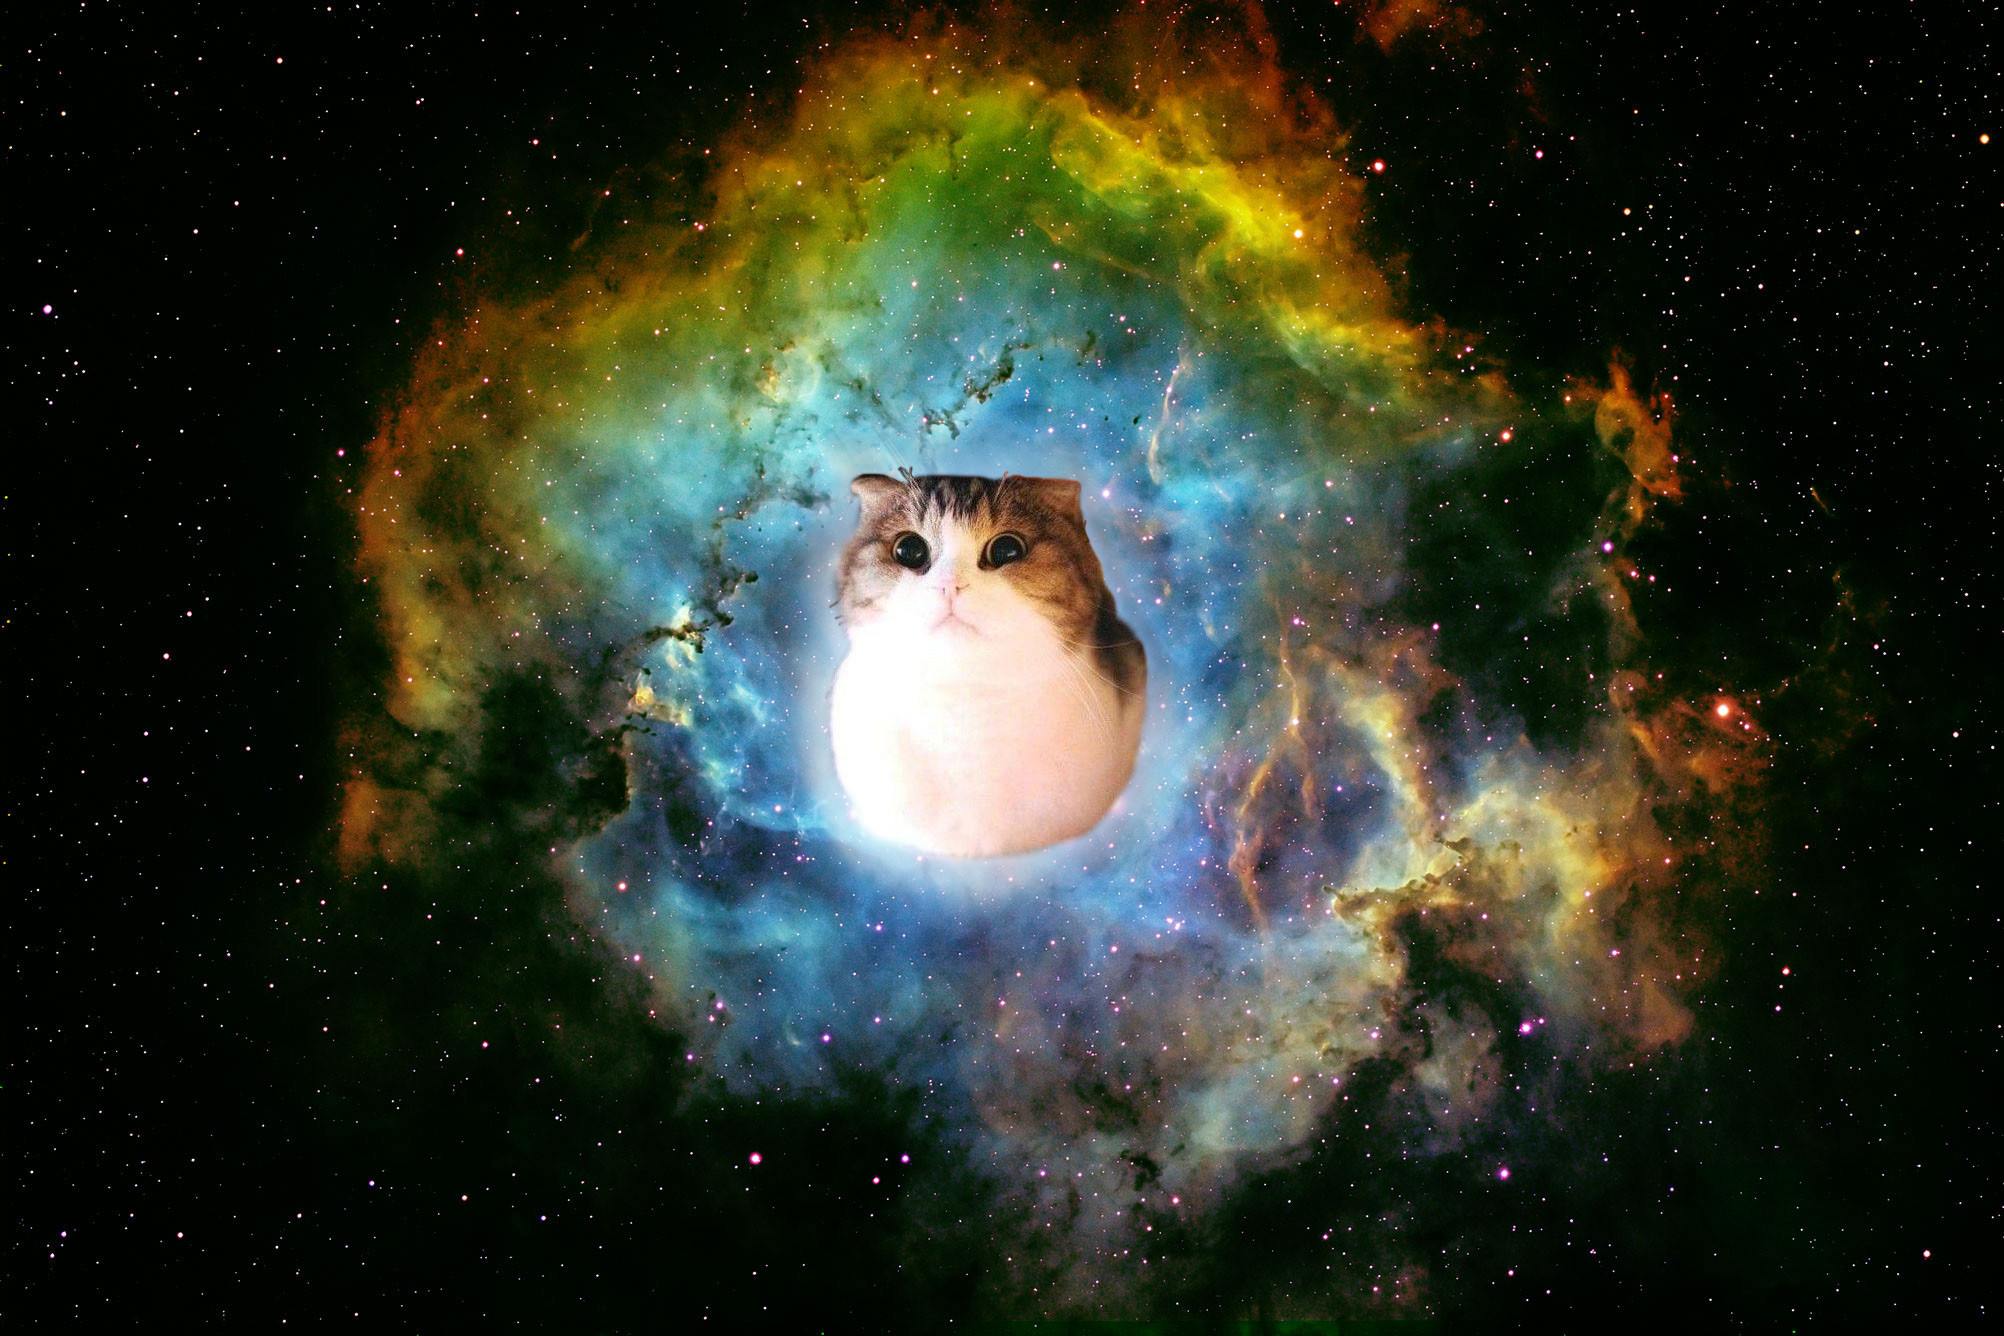 Grumpy cat wallpapers hd 61 images - Space kitty wallpaper ...